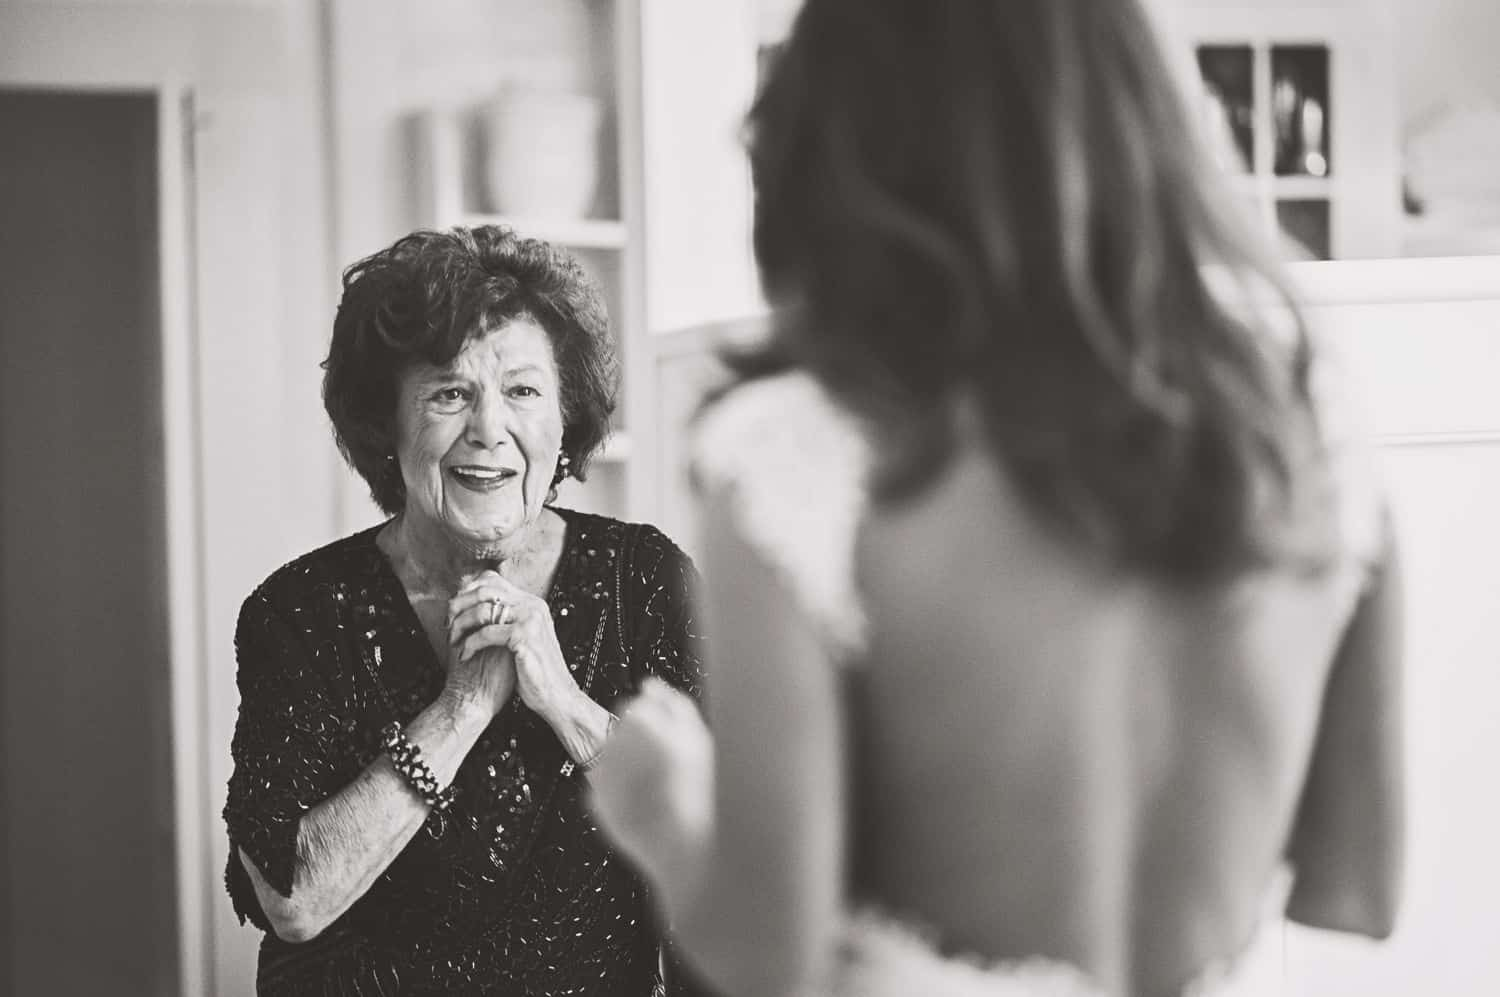 Mother sees daughter in wedding dress for the first time. By Harris & Co.